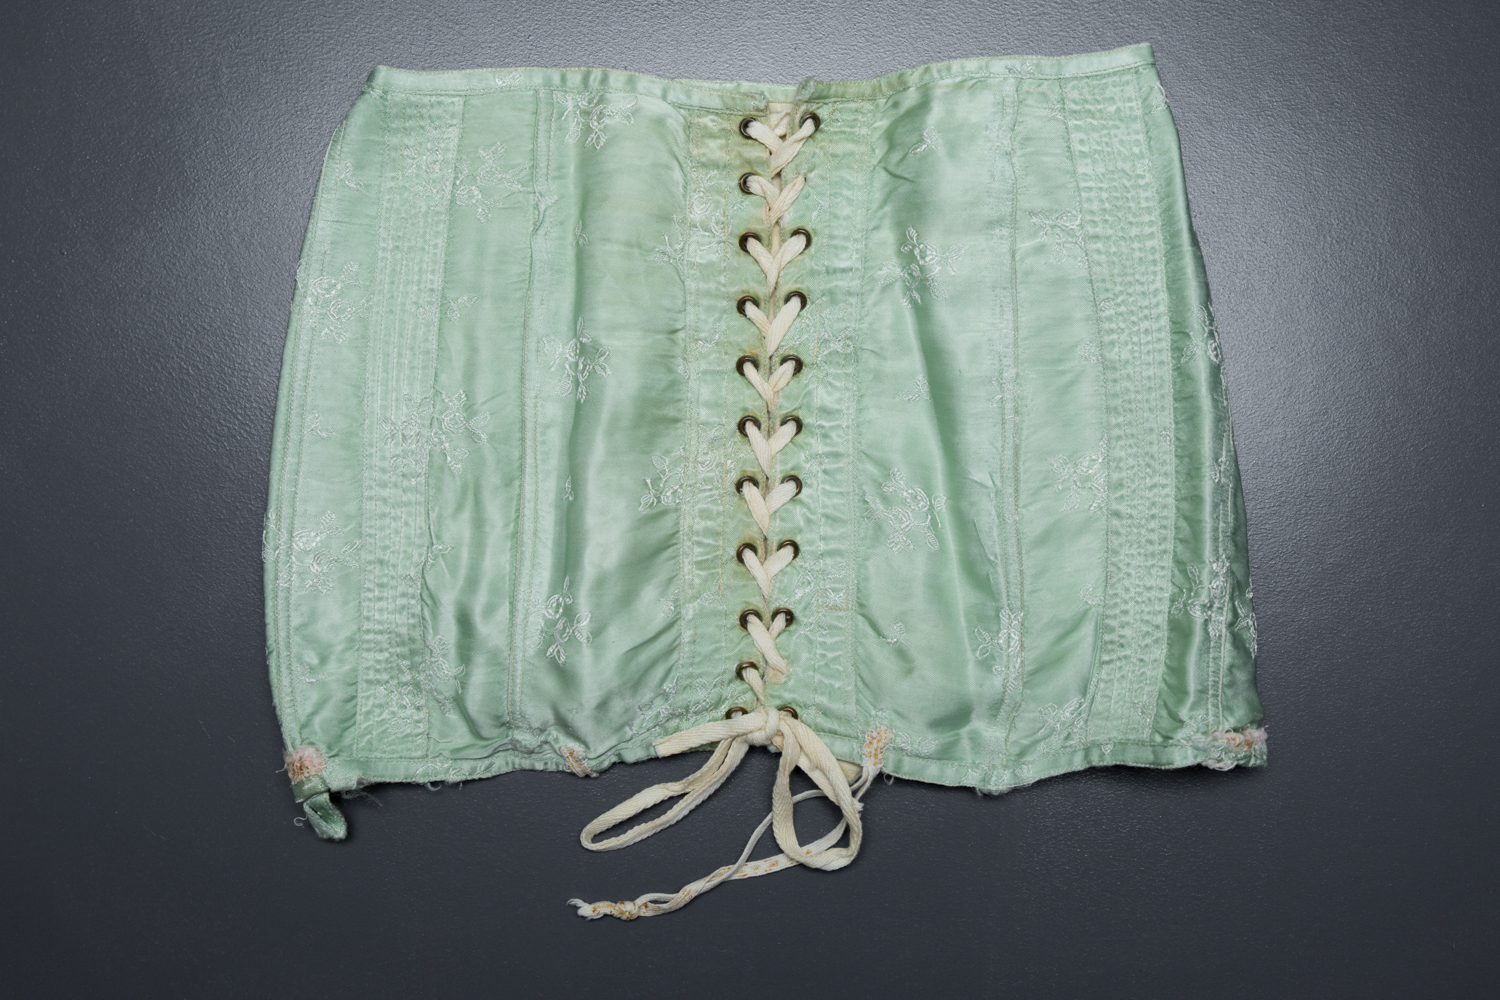 Short Green Brocade Girdle, c. 1920s, Russia. The Underpinnings Museum. Photography by Tigz Rice